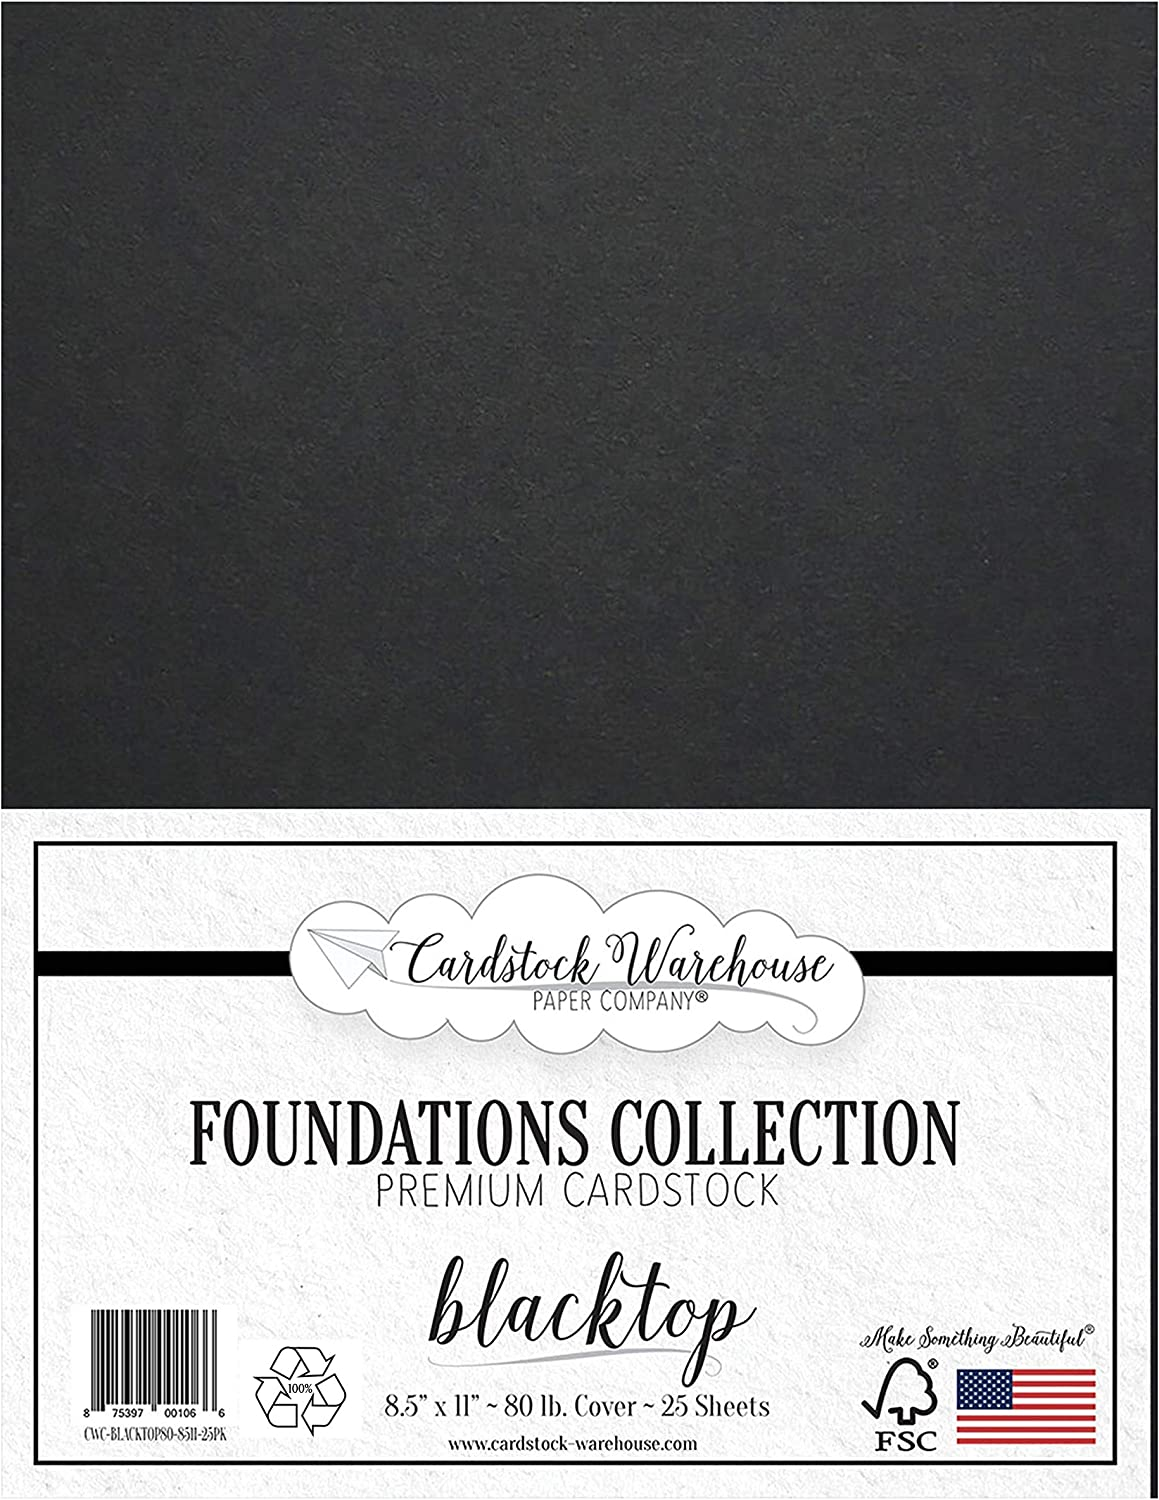 Blacktop 100% Recycled Cardstock Paper - 8.5 x 11 inch Premium 80 LB. Cover - 25 Sheets from Cardstock Warehouse